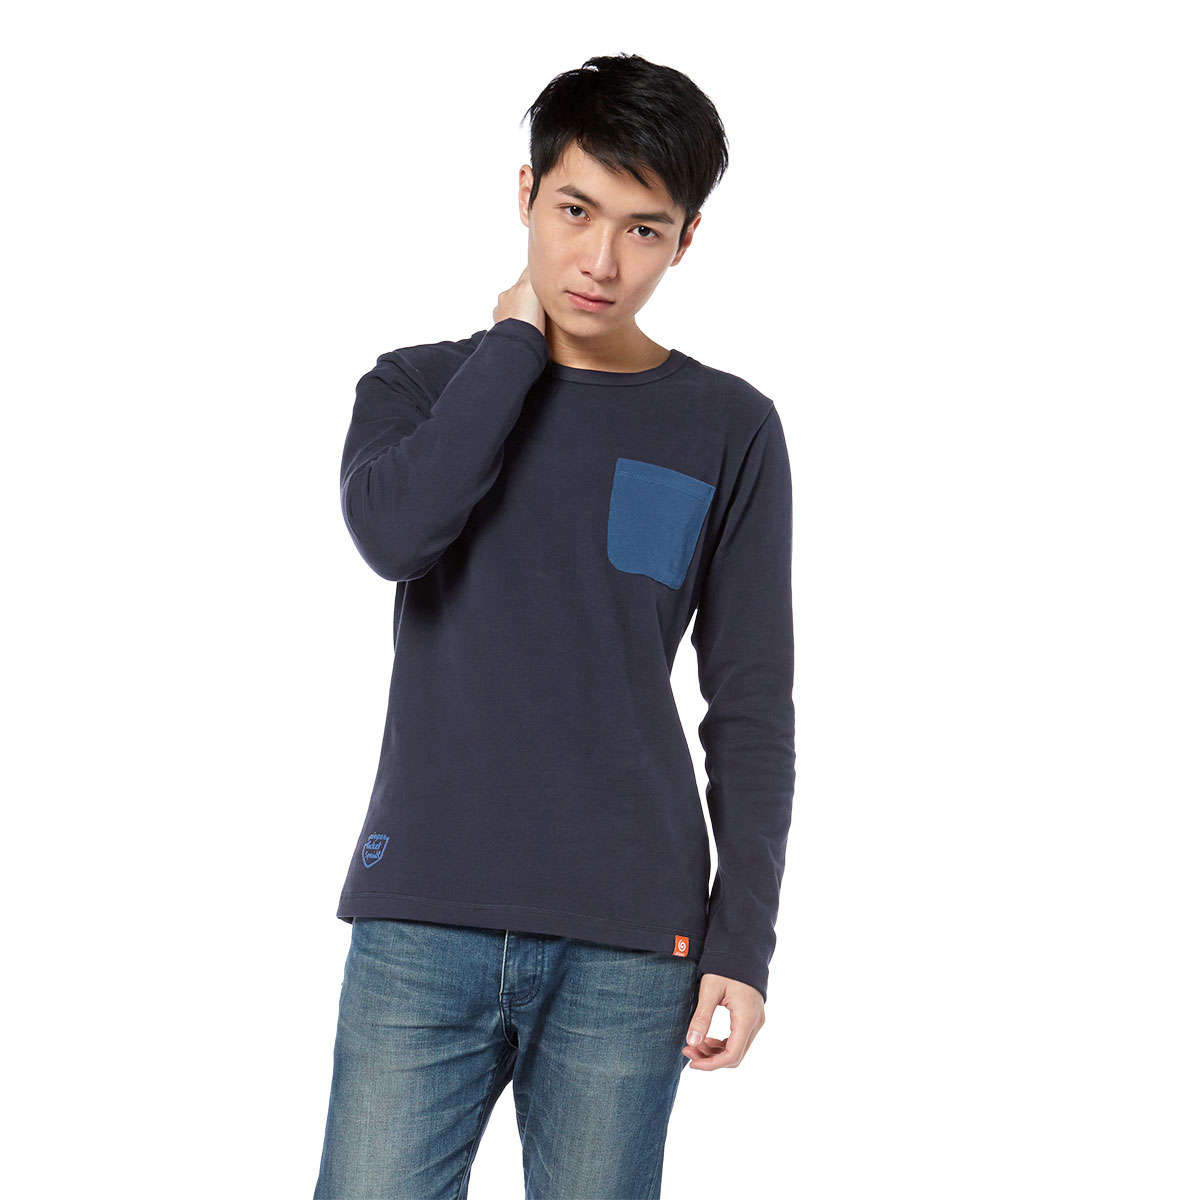 Pocket Special Unisex Long Sleeves Tee